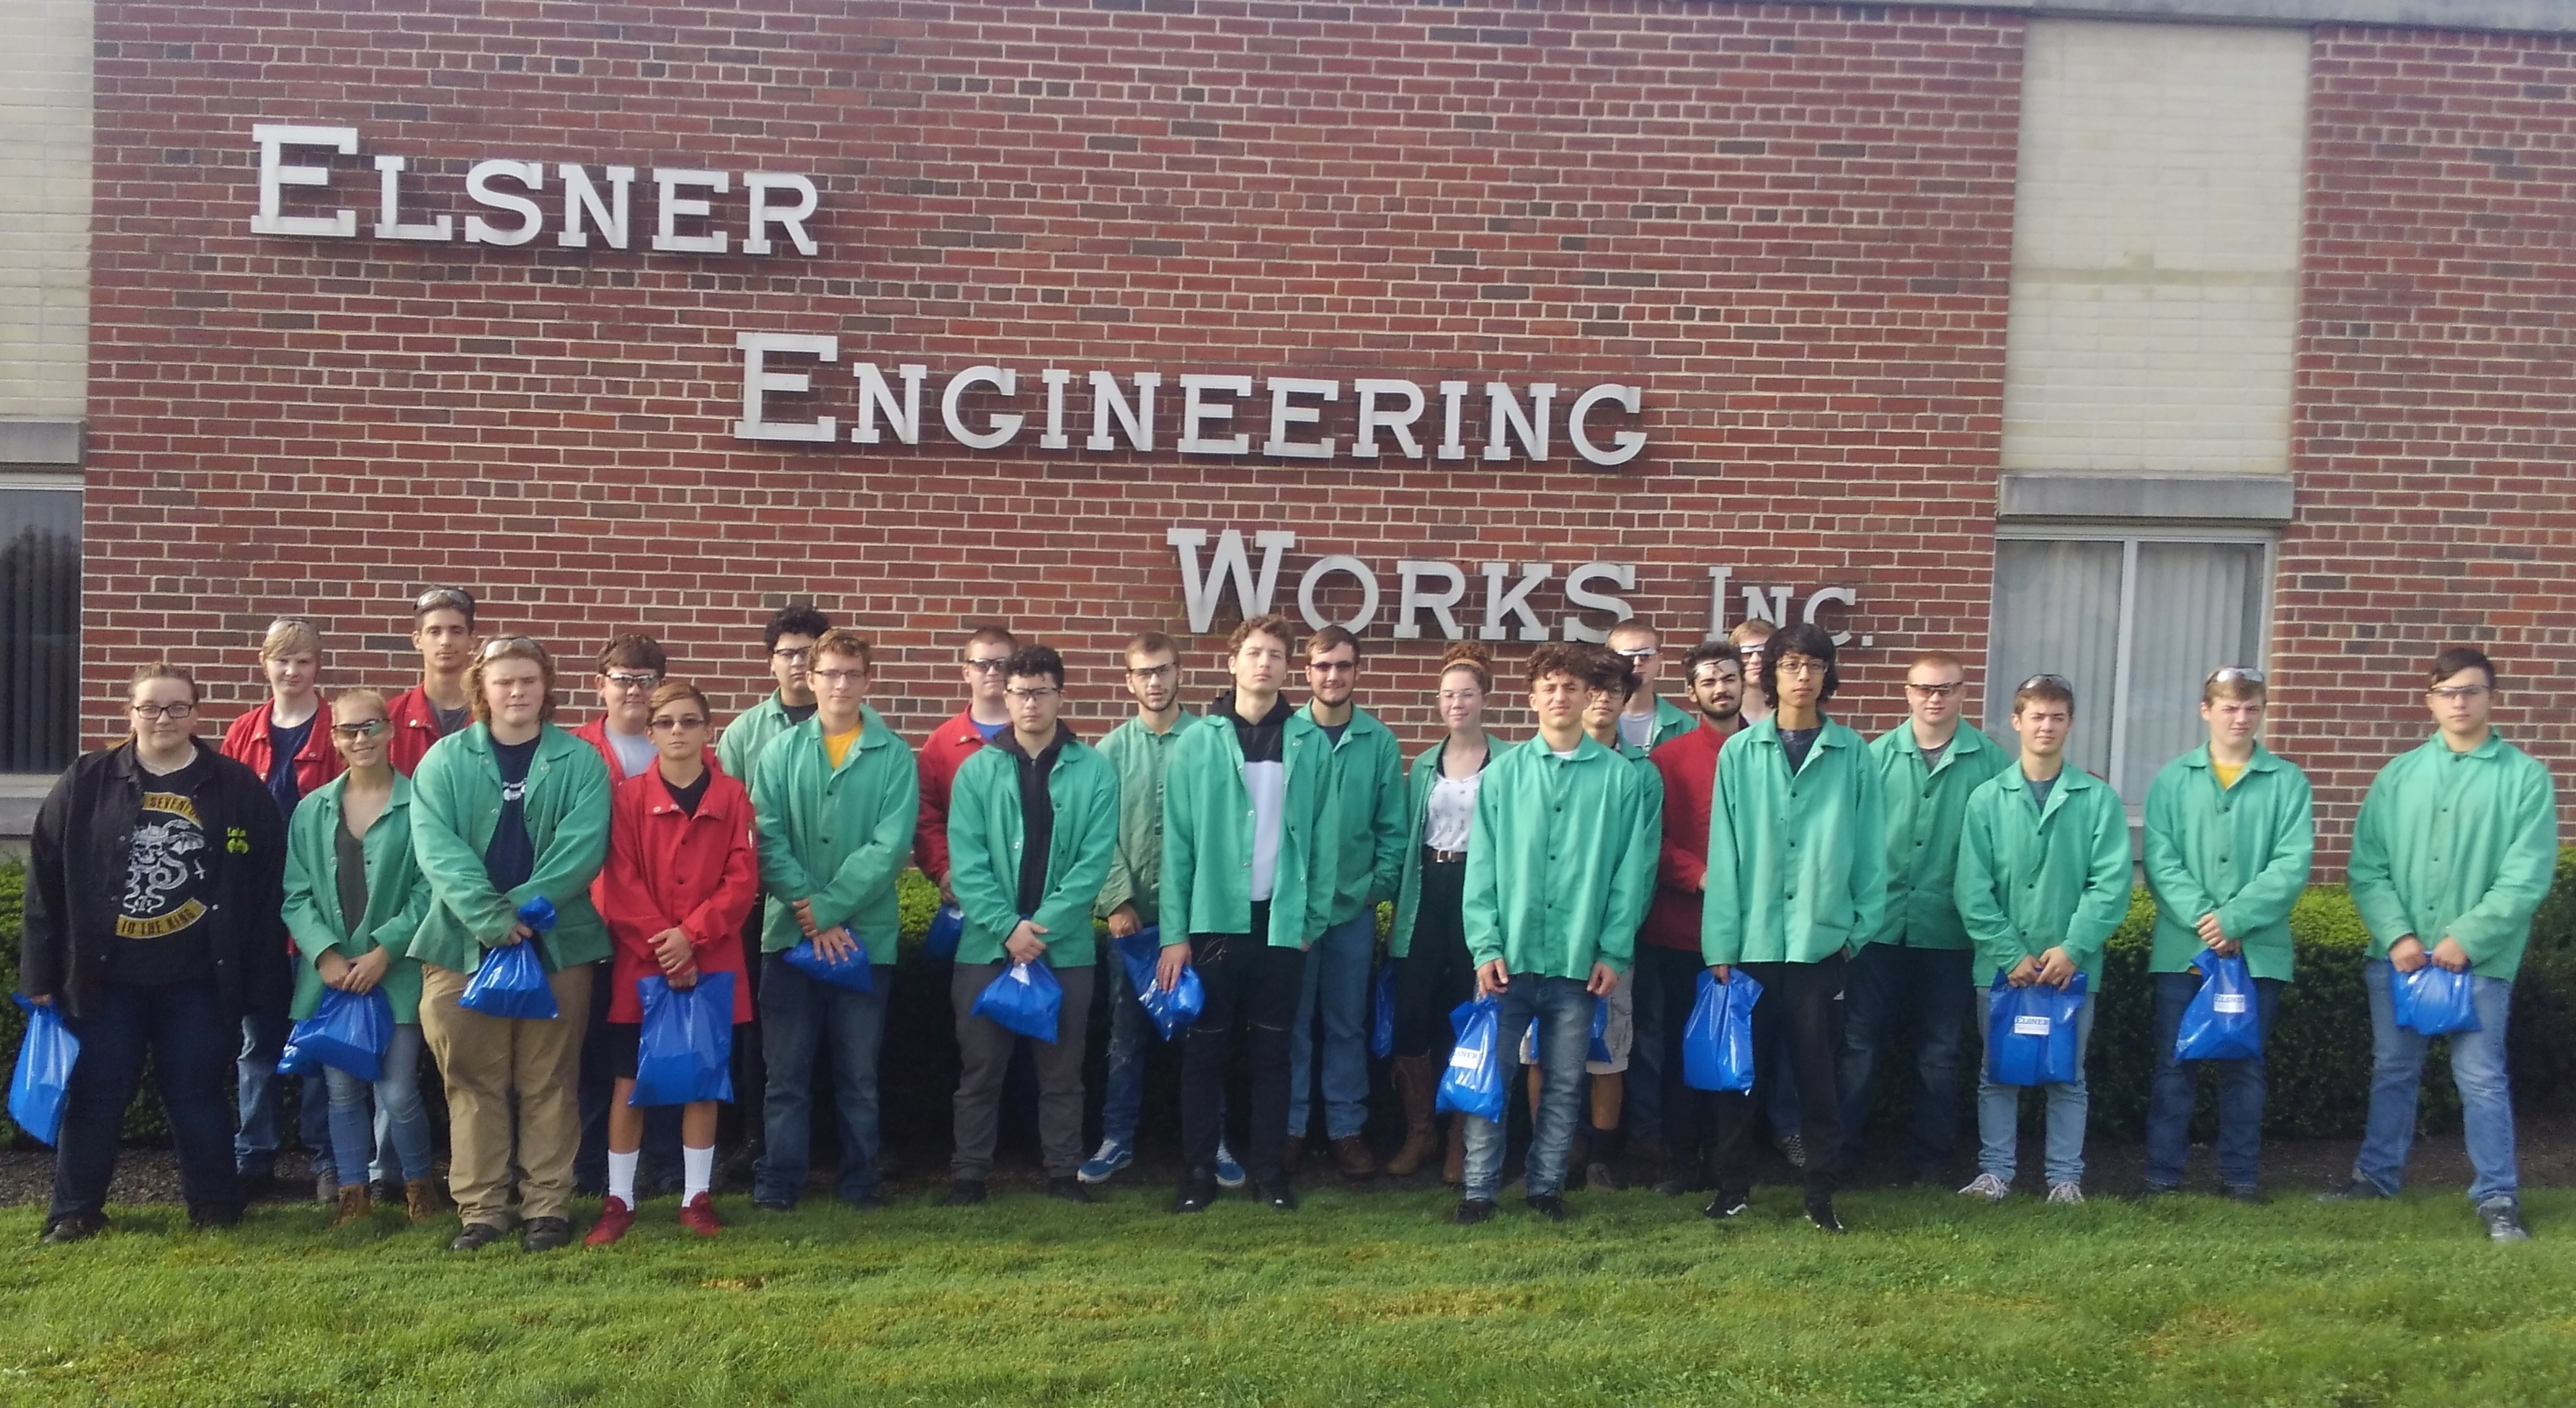 manufacturing day hhs group photo